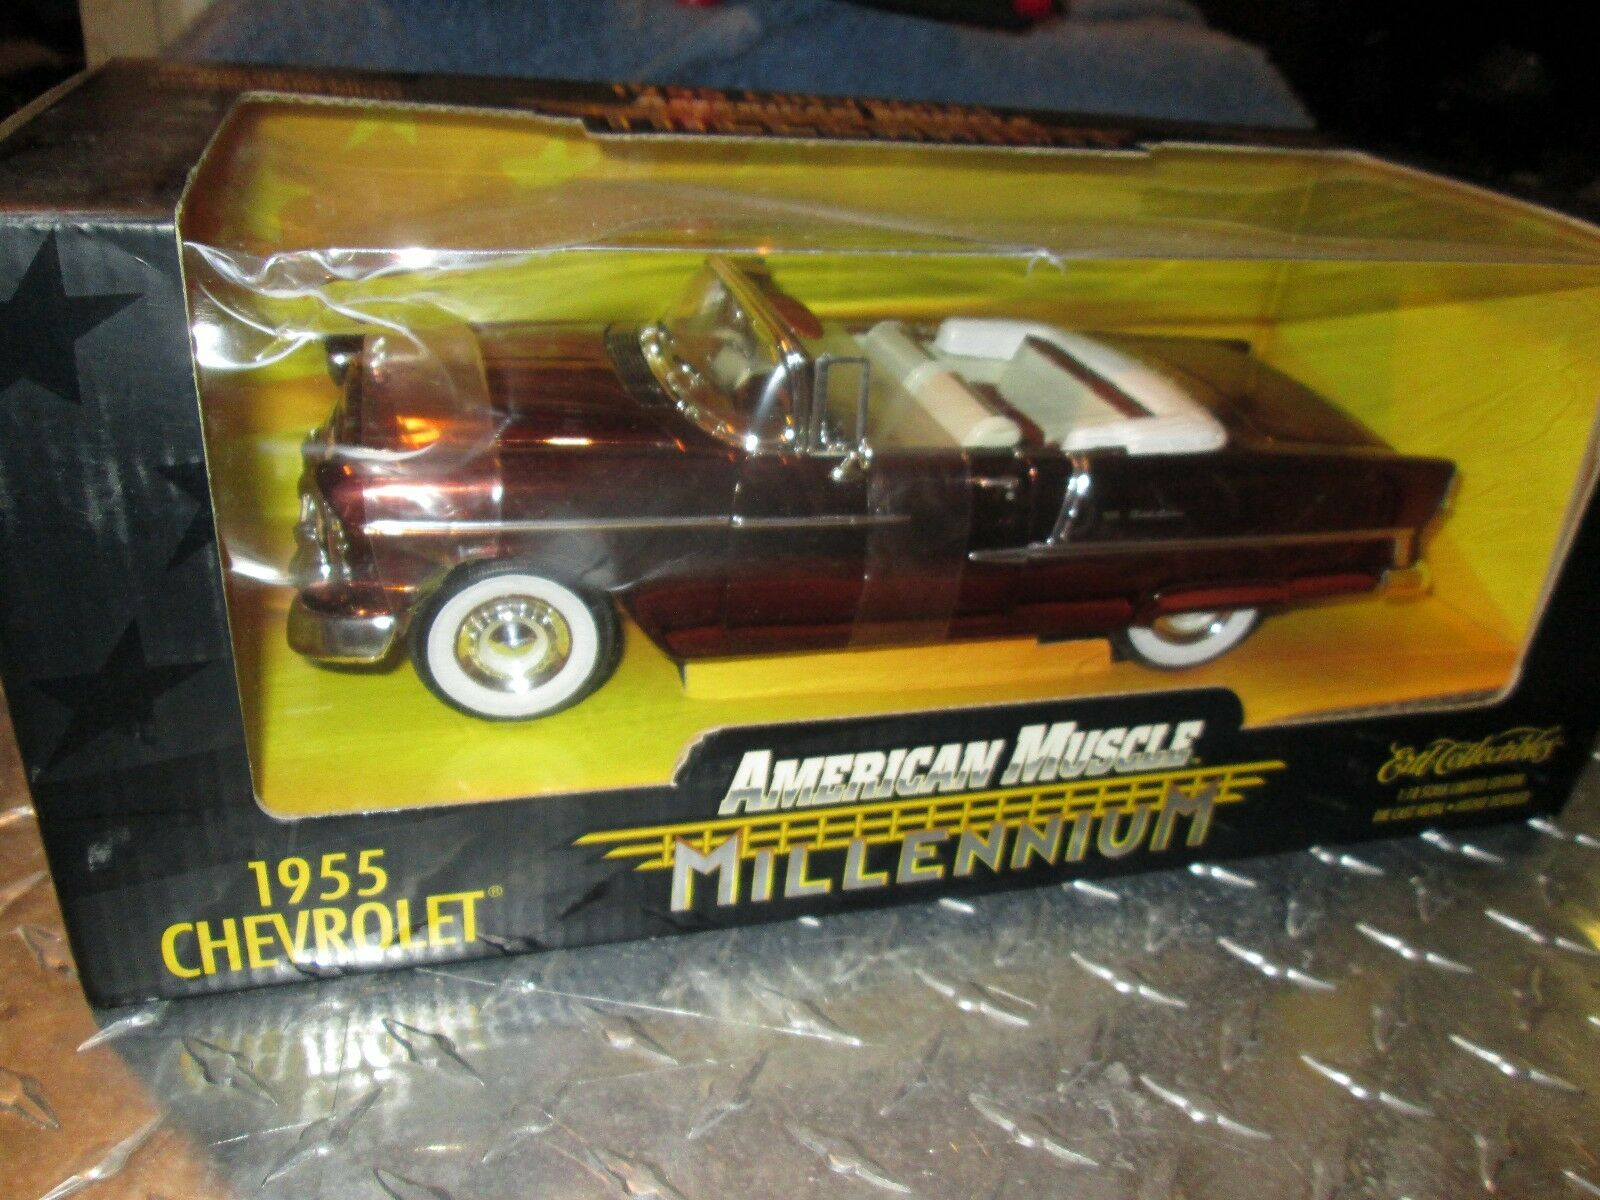 55 CHEVROLET BELAIR Convertible Millenium AMERICAN MUSCLE 1 18 Cuivre Chrome Chase